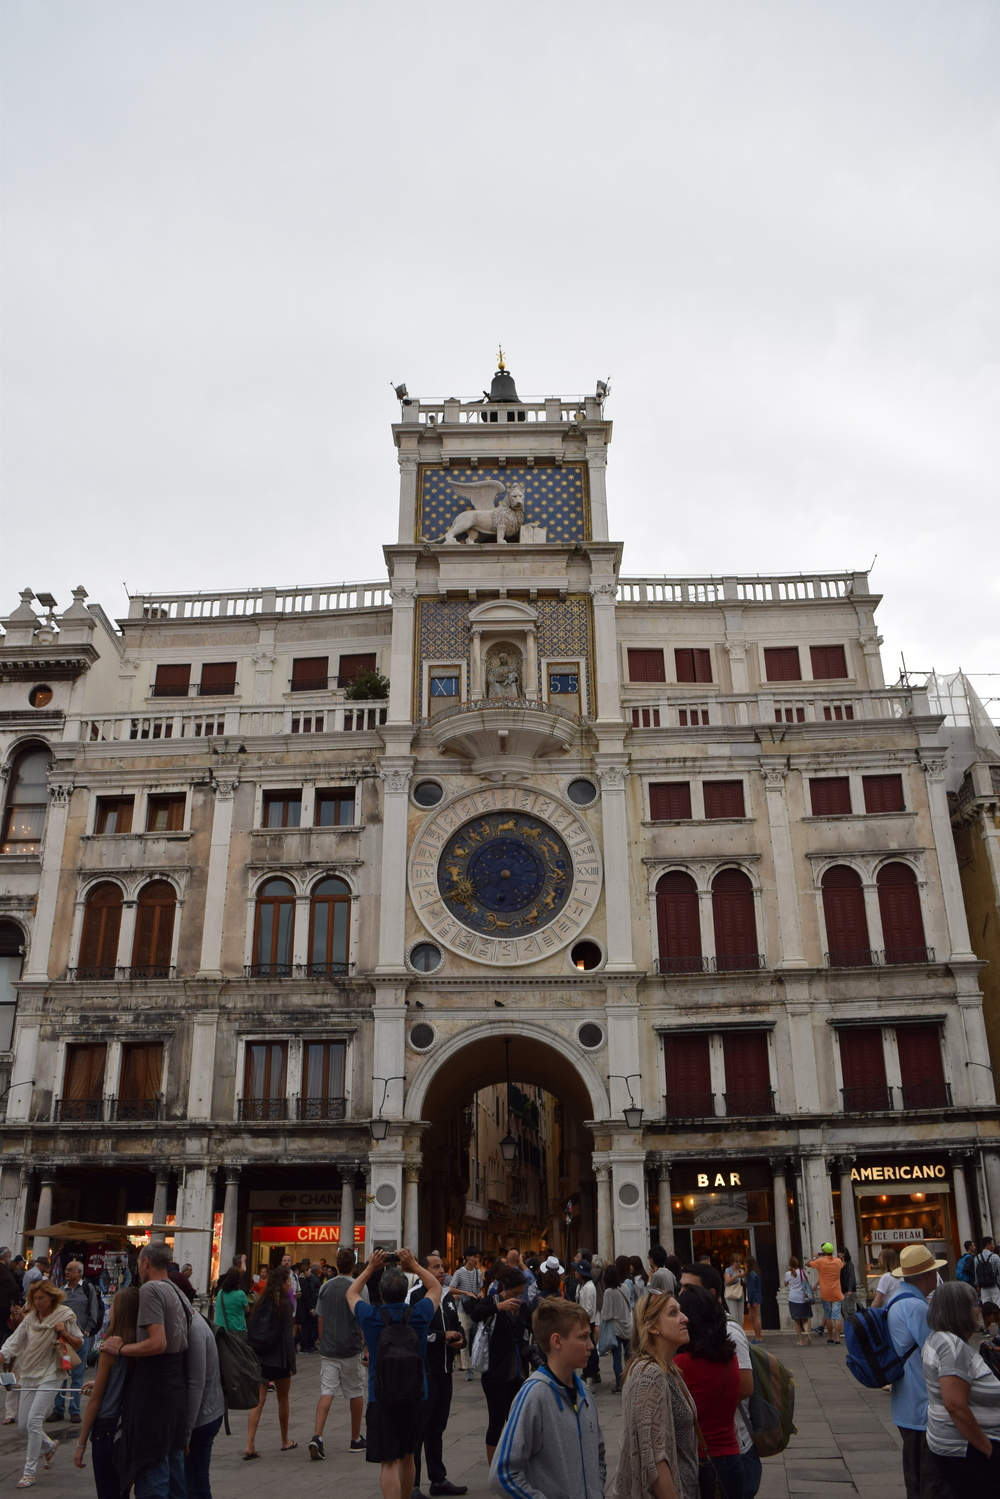 The Clock Tower in the Piazza di San Marco